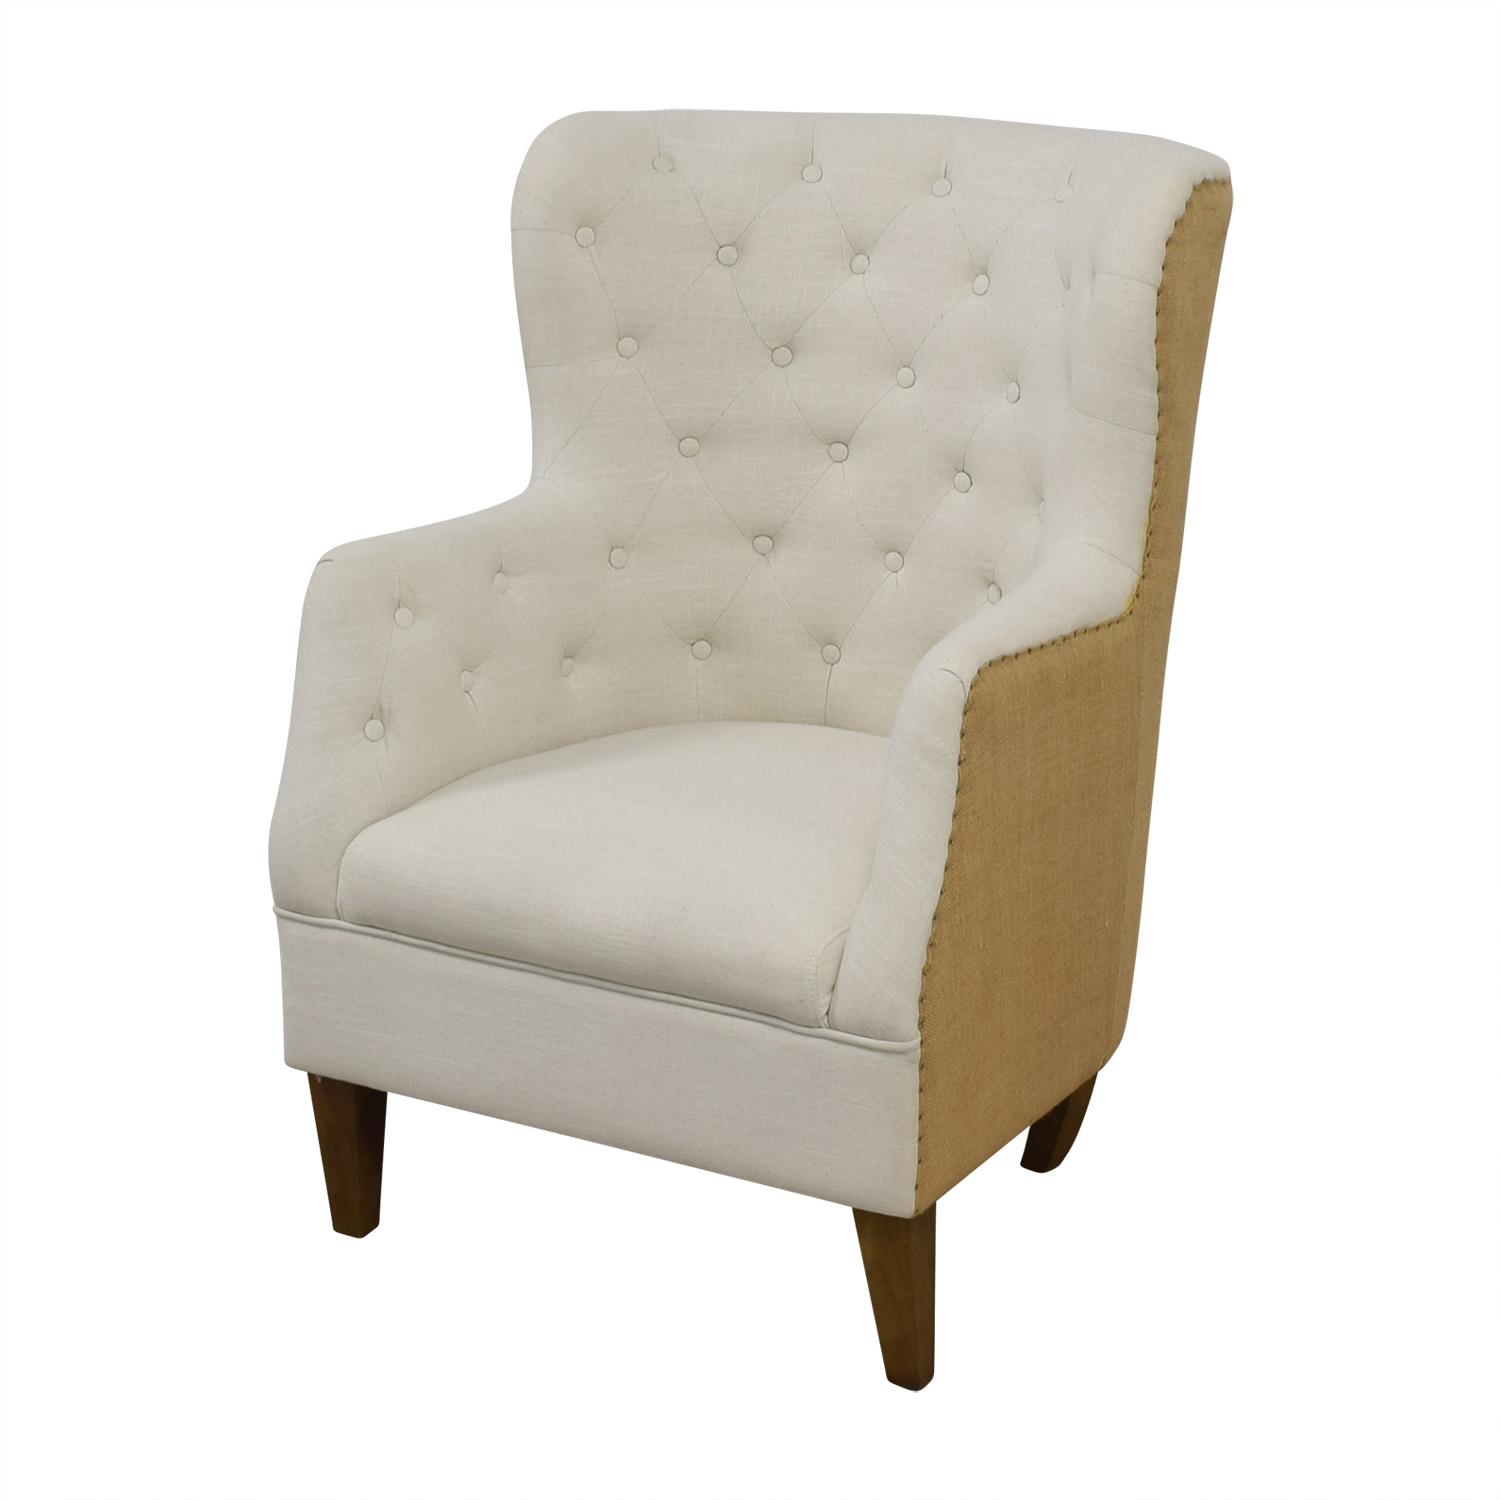 Classic Concepts White Tufted and Tan Back Wing Back Accent Chair Classic Concepts